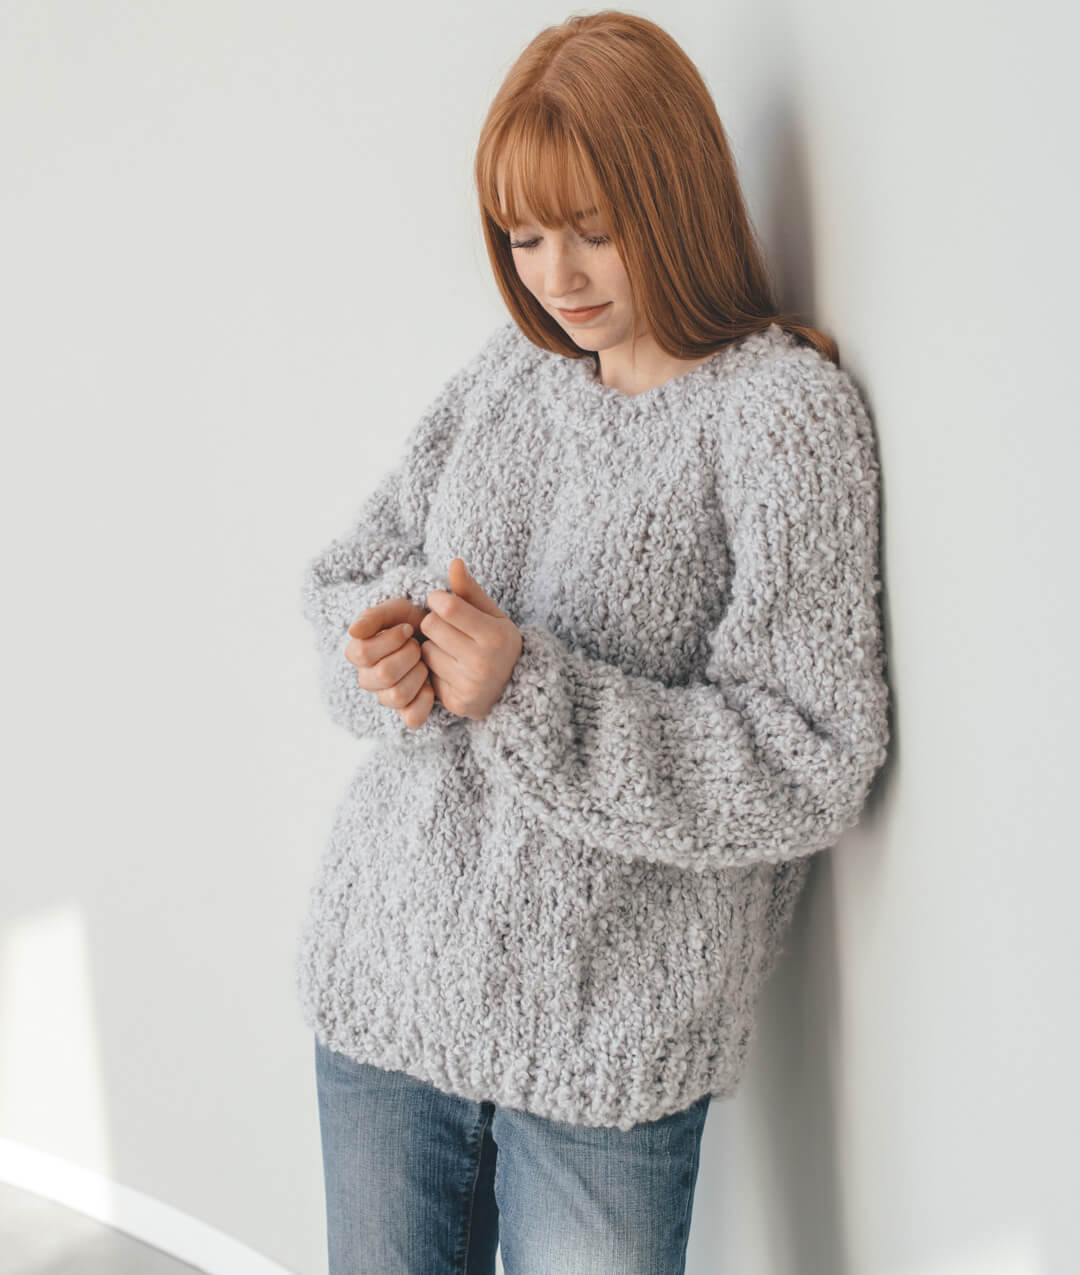 Sweaters and Tops - Wool - Winter Holiday Jumper - 1